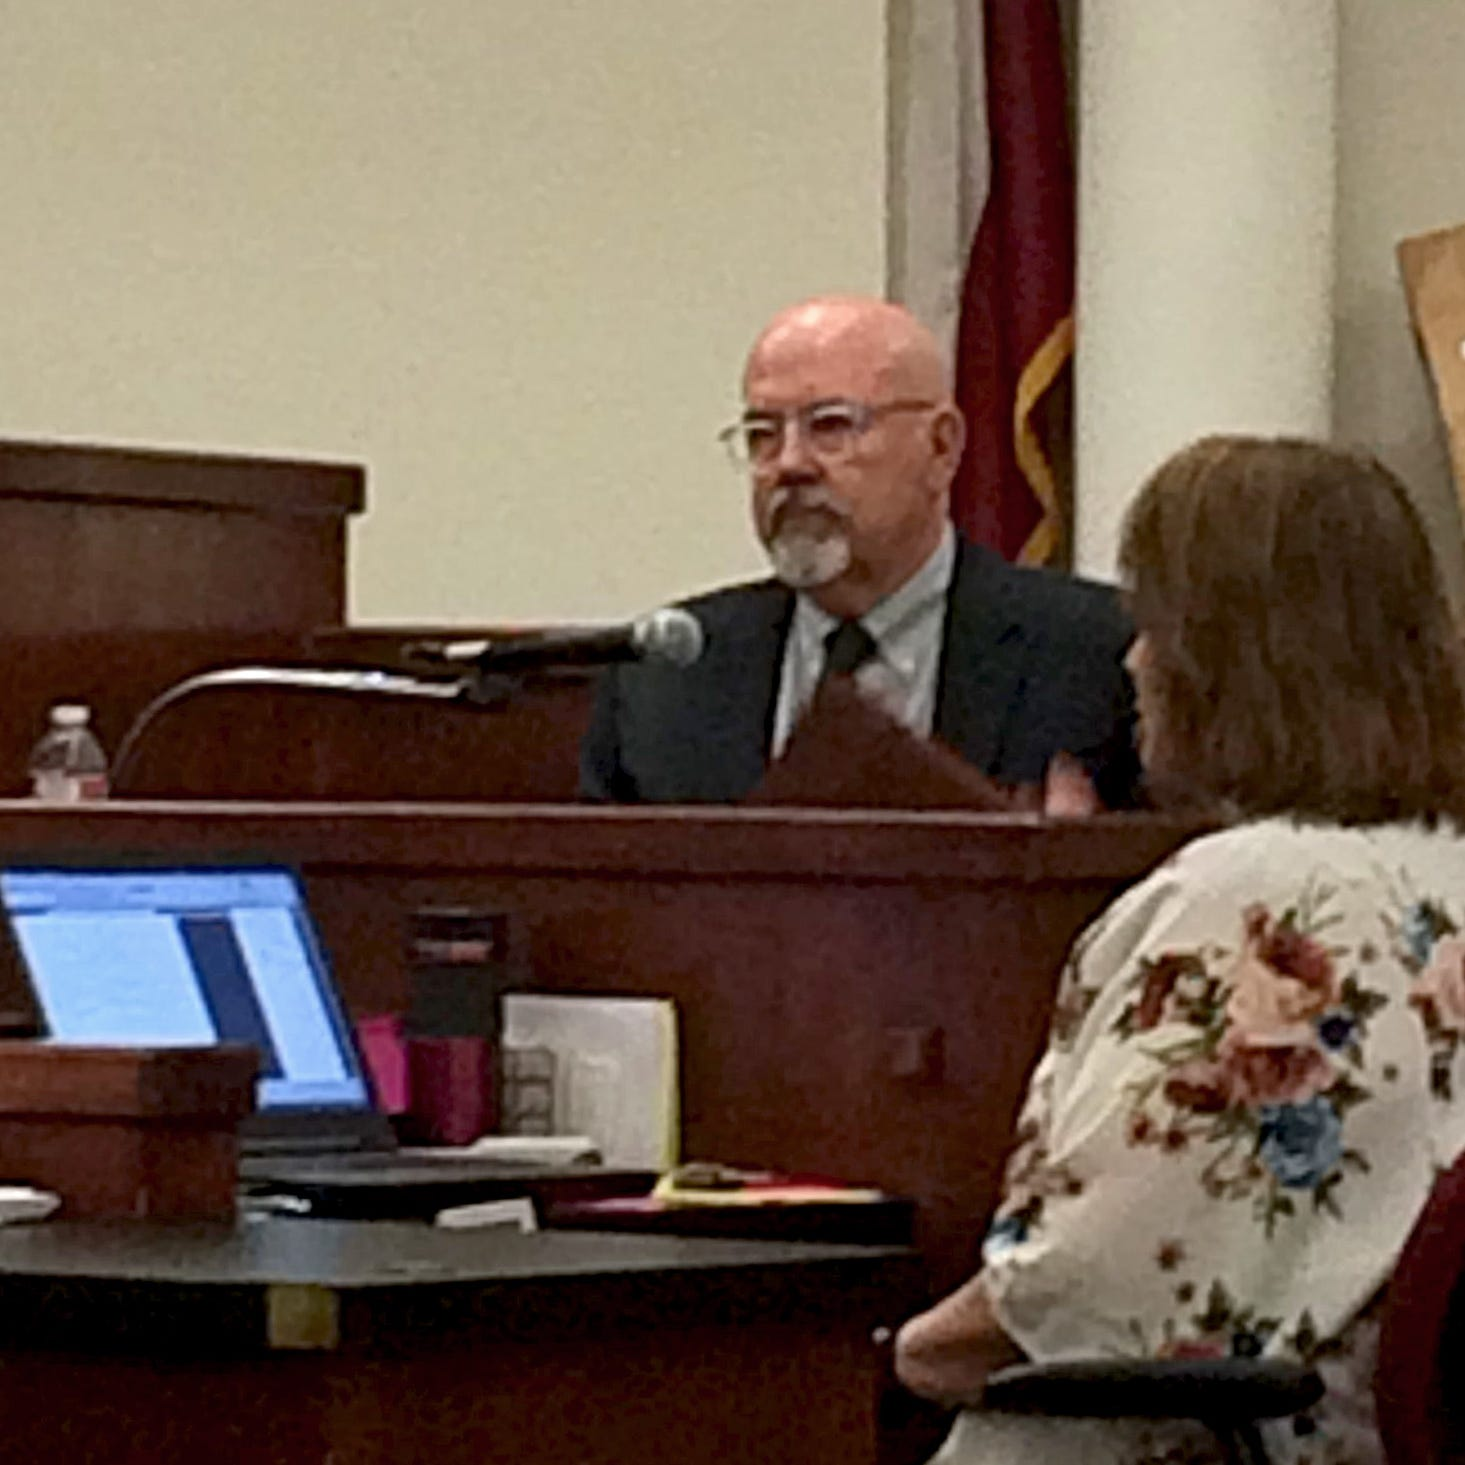 Prosecution's forensic psychologist: Kody Lott was sane at time of shooting